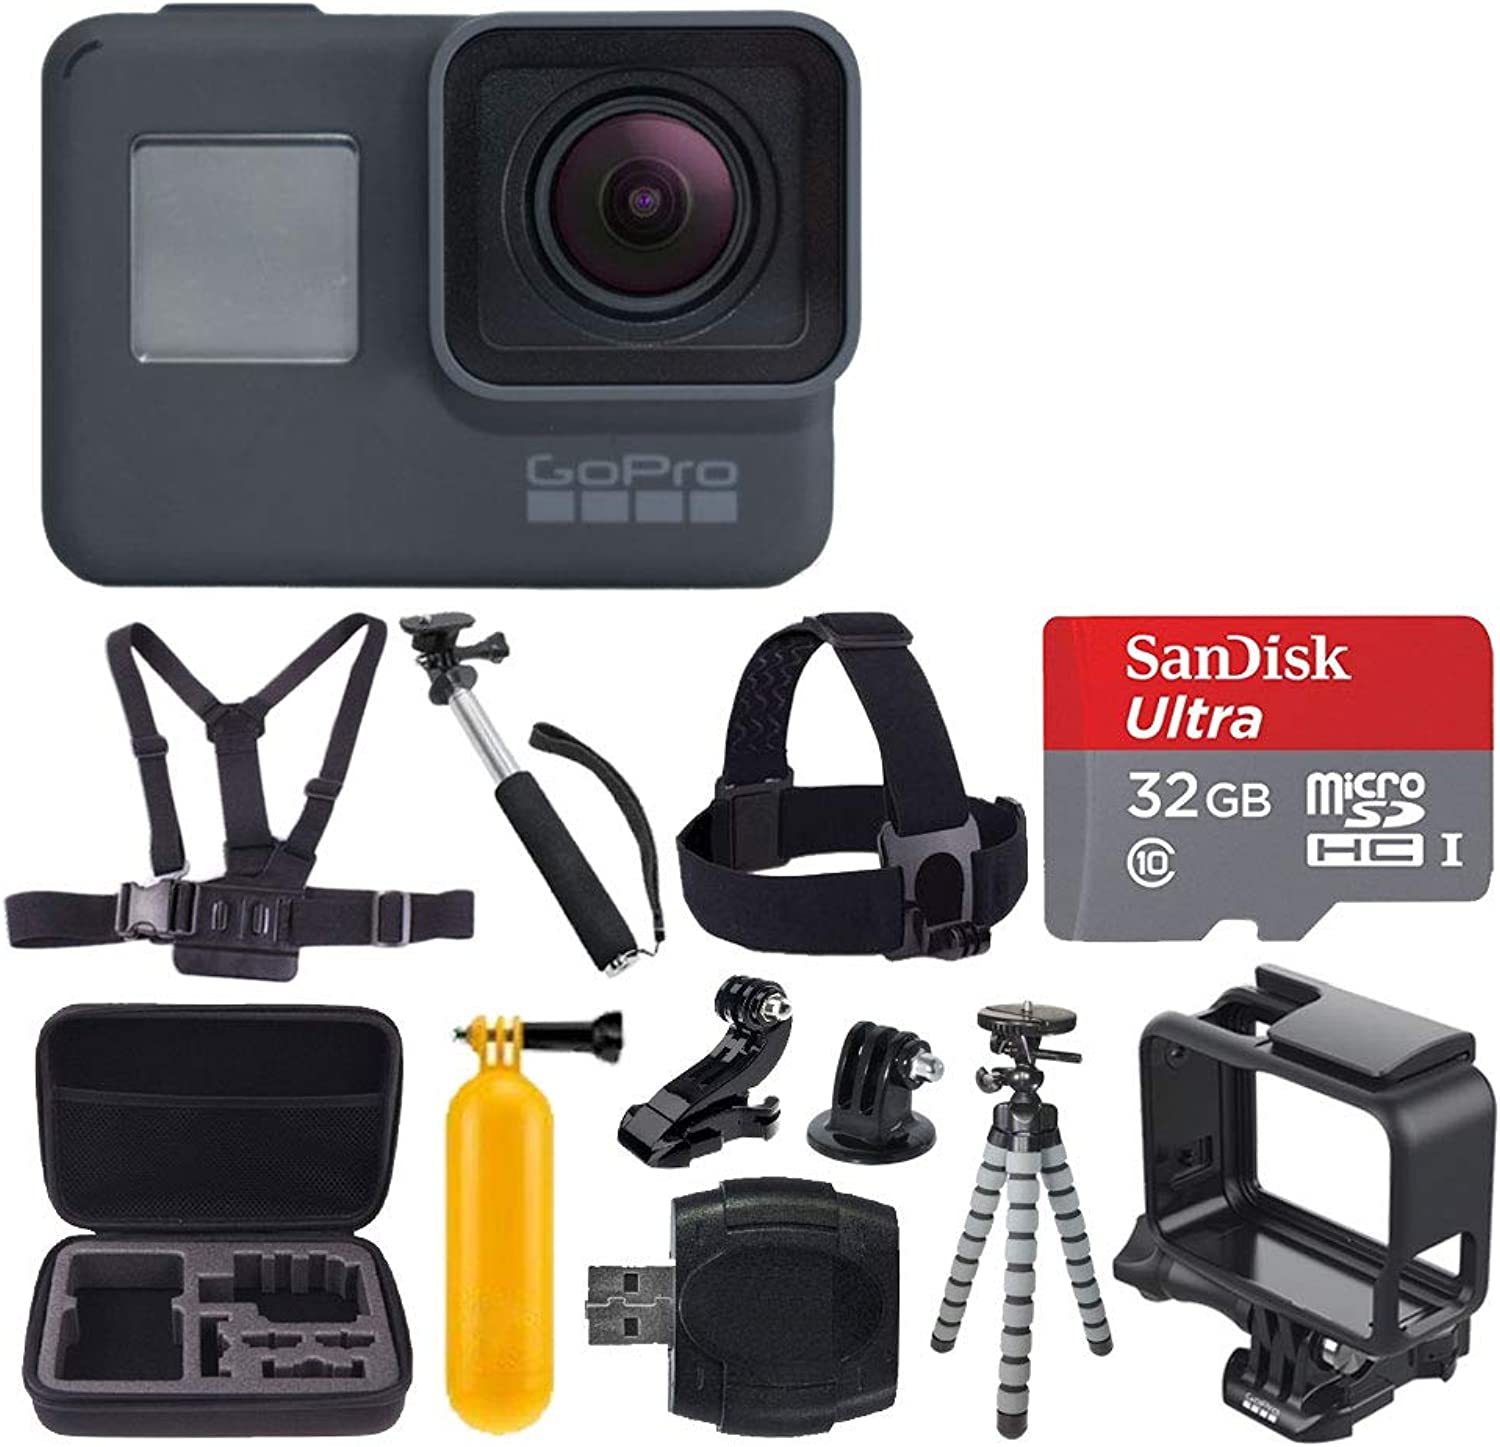 GoPro HERO6 Black Action Camera + 32GB microSDHC with Adapter + Medium Case + Vivitar Memory Card Holder (24 Slots) + Head & Chest Strap + Adhesive Mounts + Floating Handle + Spike Mount + Accessories